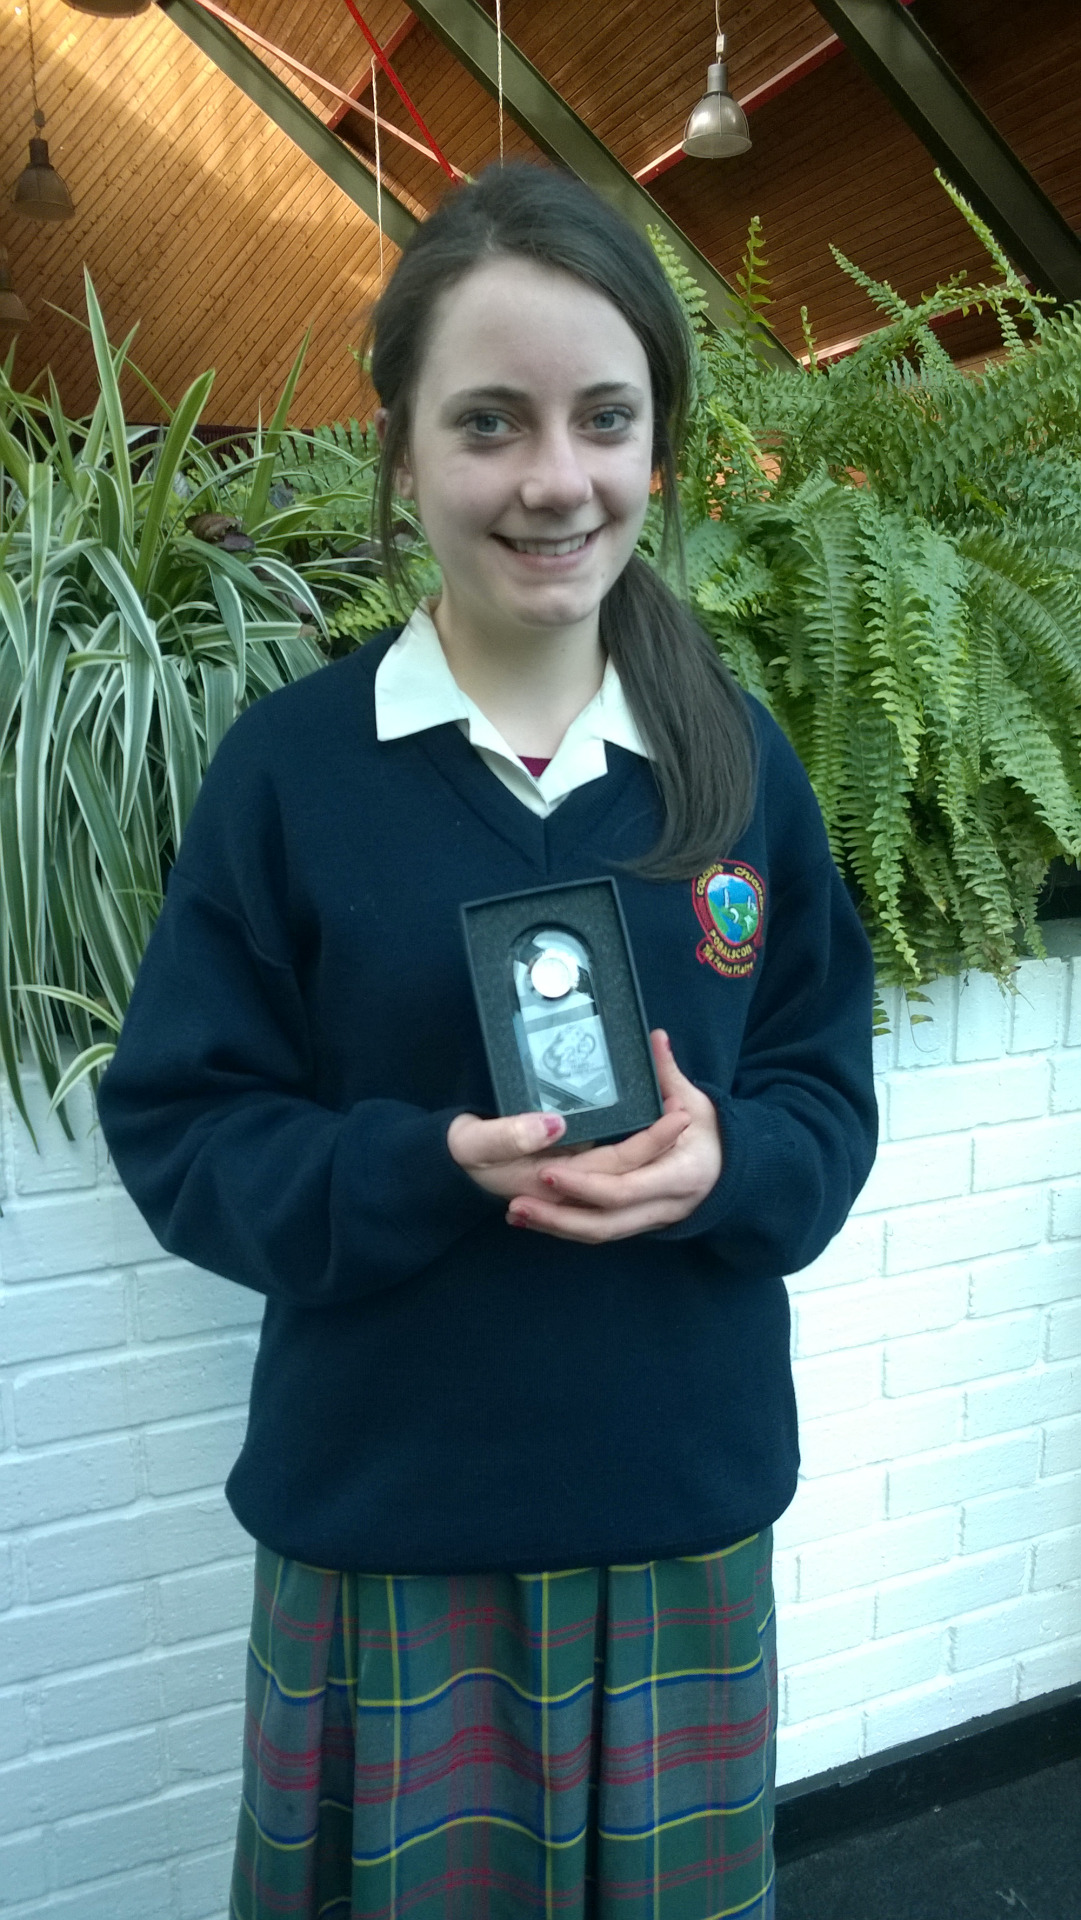 Michelle Daly is Colaiste Chiarain's representative on the Intel Community Committee. Michelle was presented with a crystal clock to commemorate Intel's 25th anniversary of setting up in Leixlip.